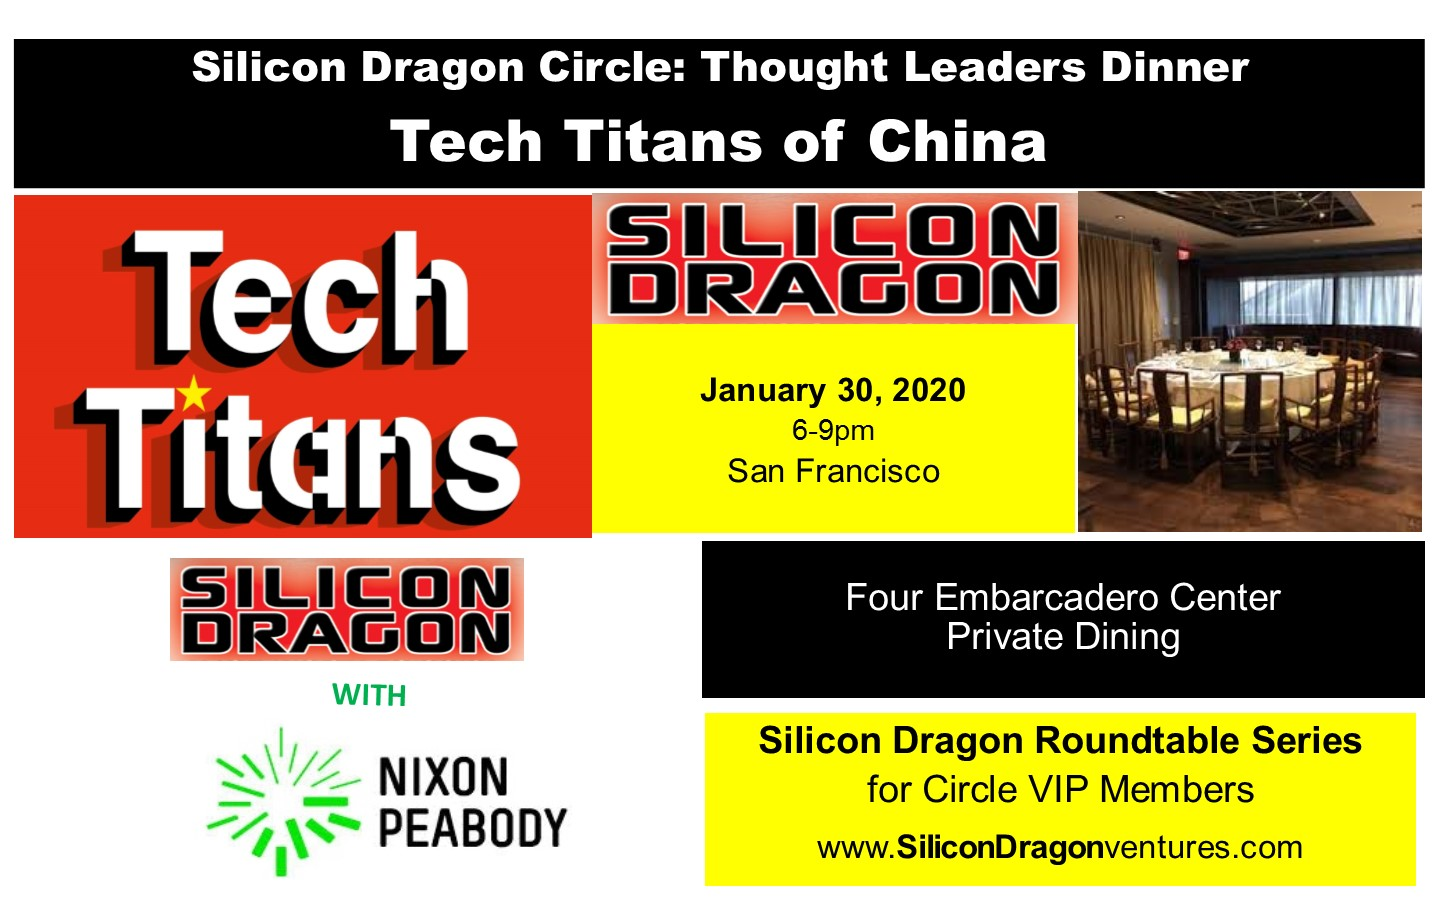 Silicon Dragon Circle Dinner: San Francisco